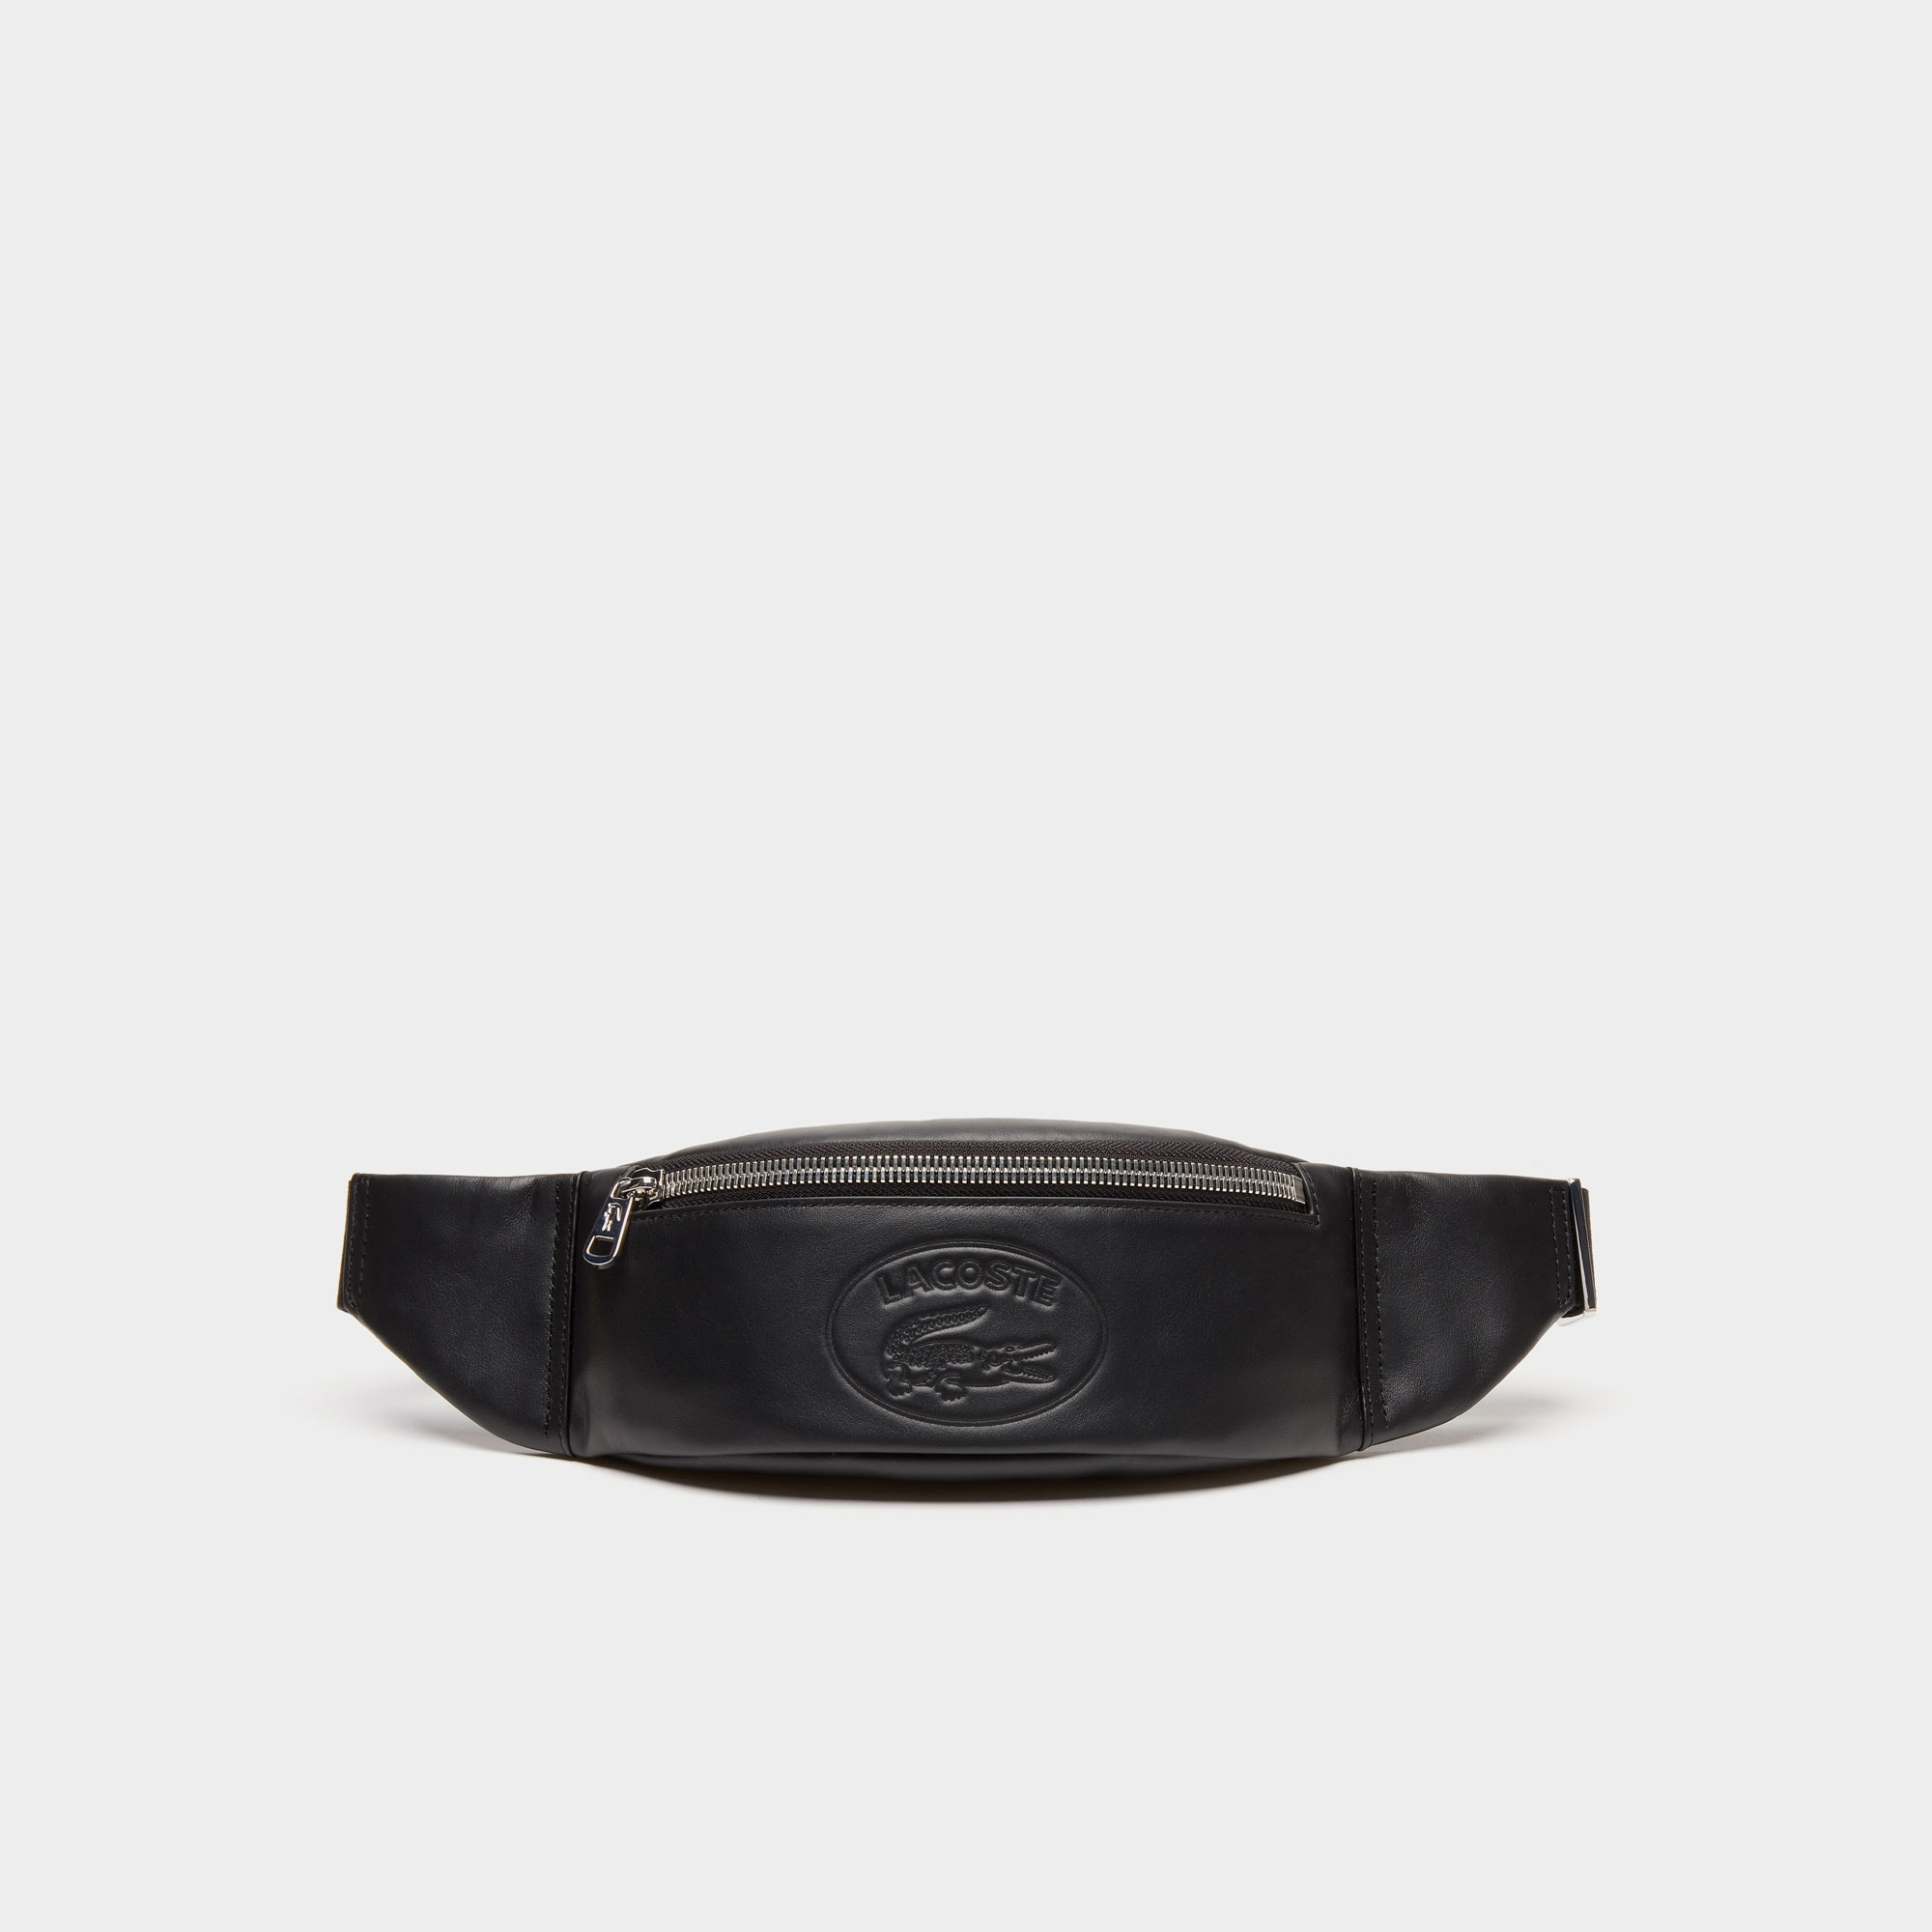 f916ec6fca Men's L.12.12 Casual Embossed Lettering Leather Zip Fanny Pack   LACOSTE